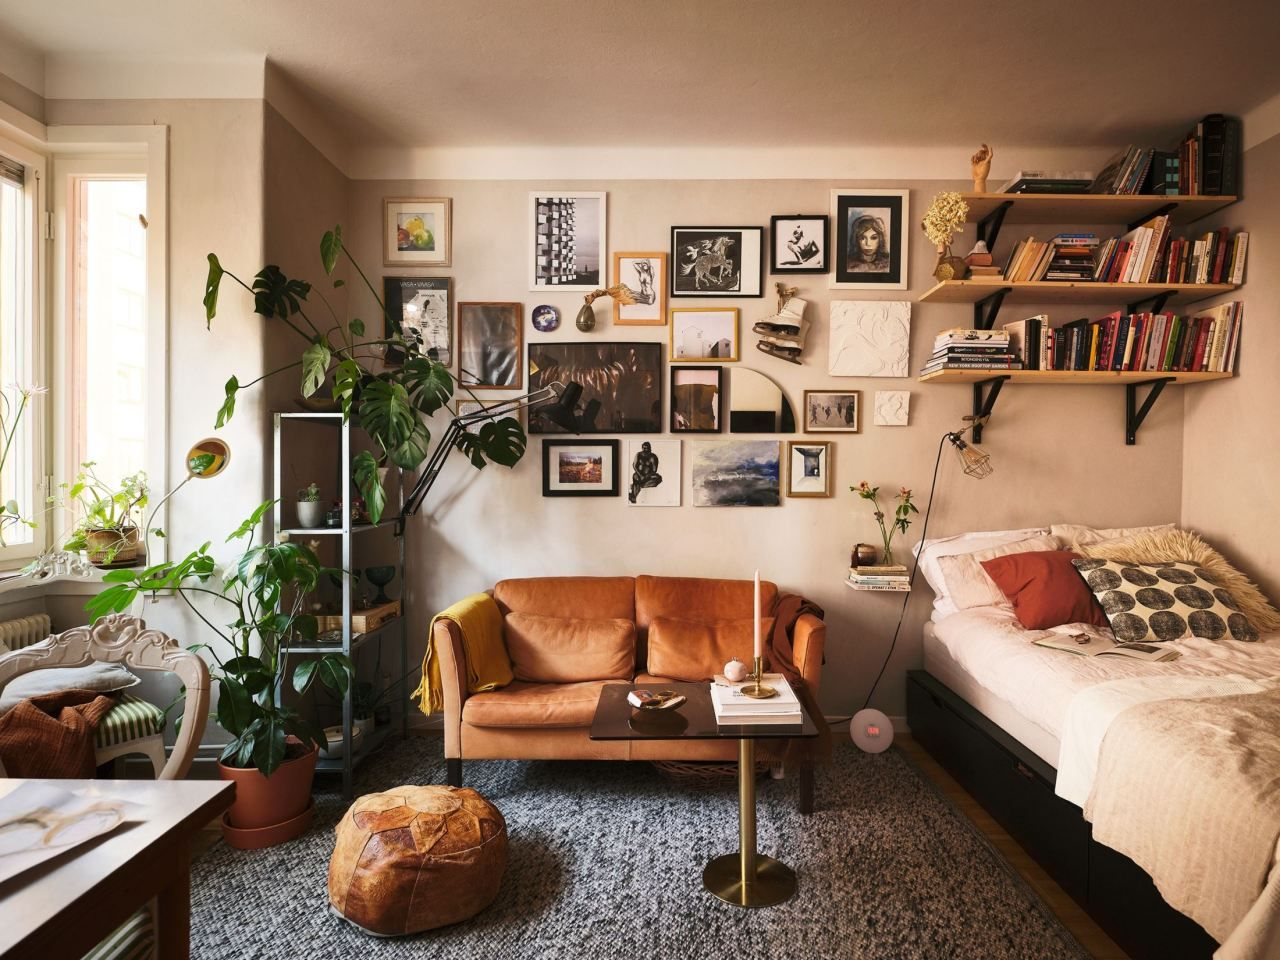 Cozy & warm studio apartment in 2020 (With images) | Dream ...